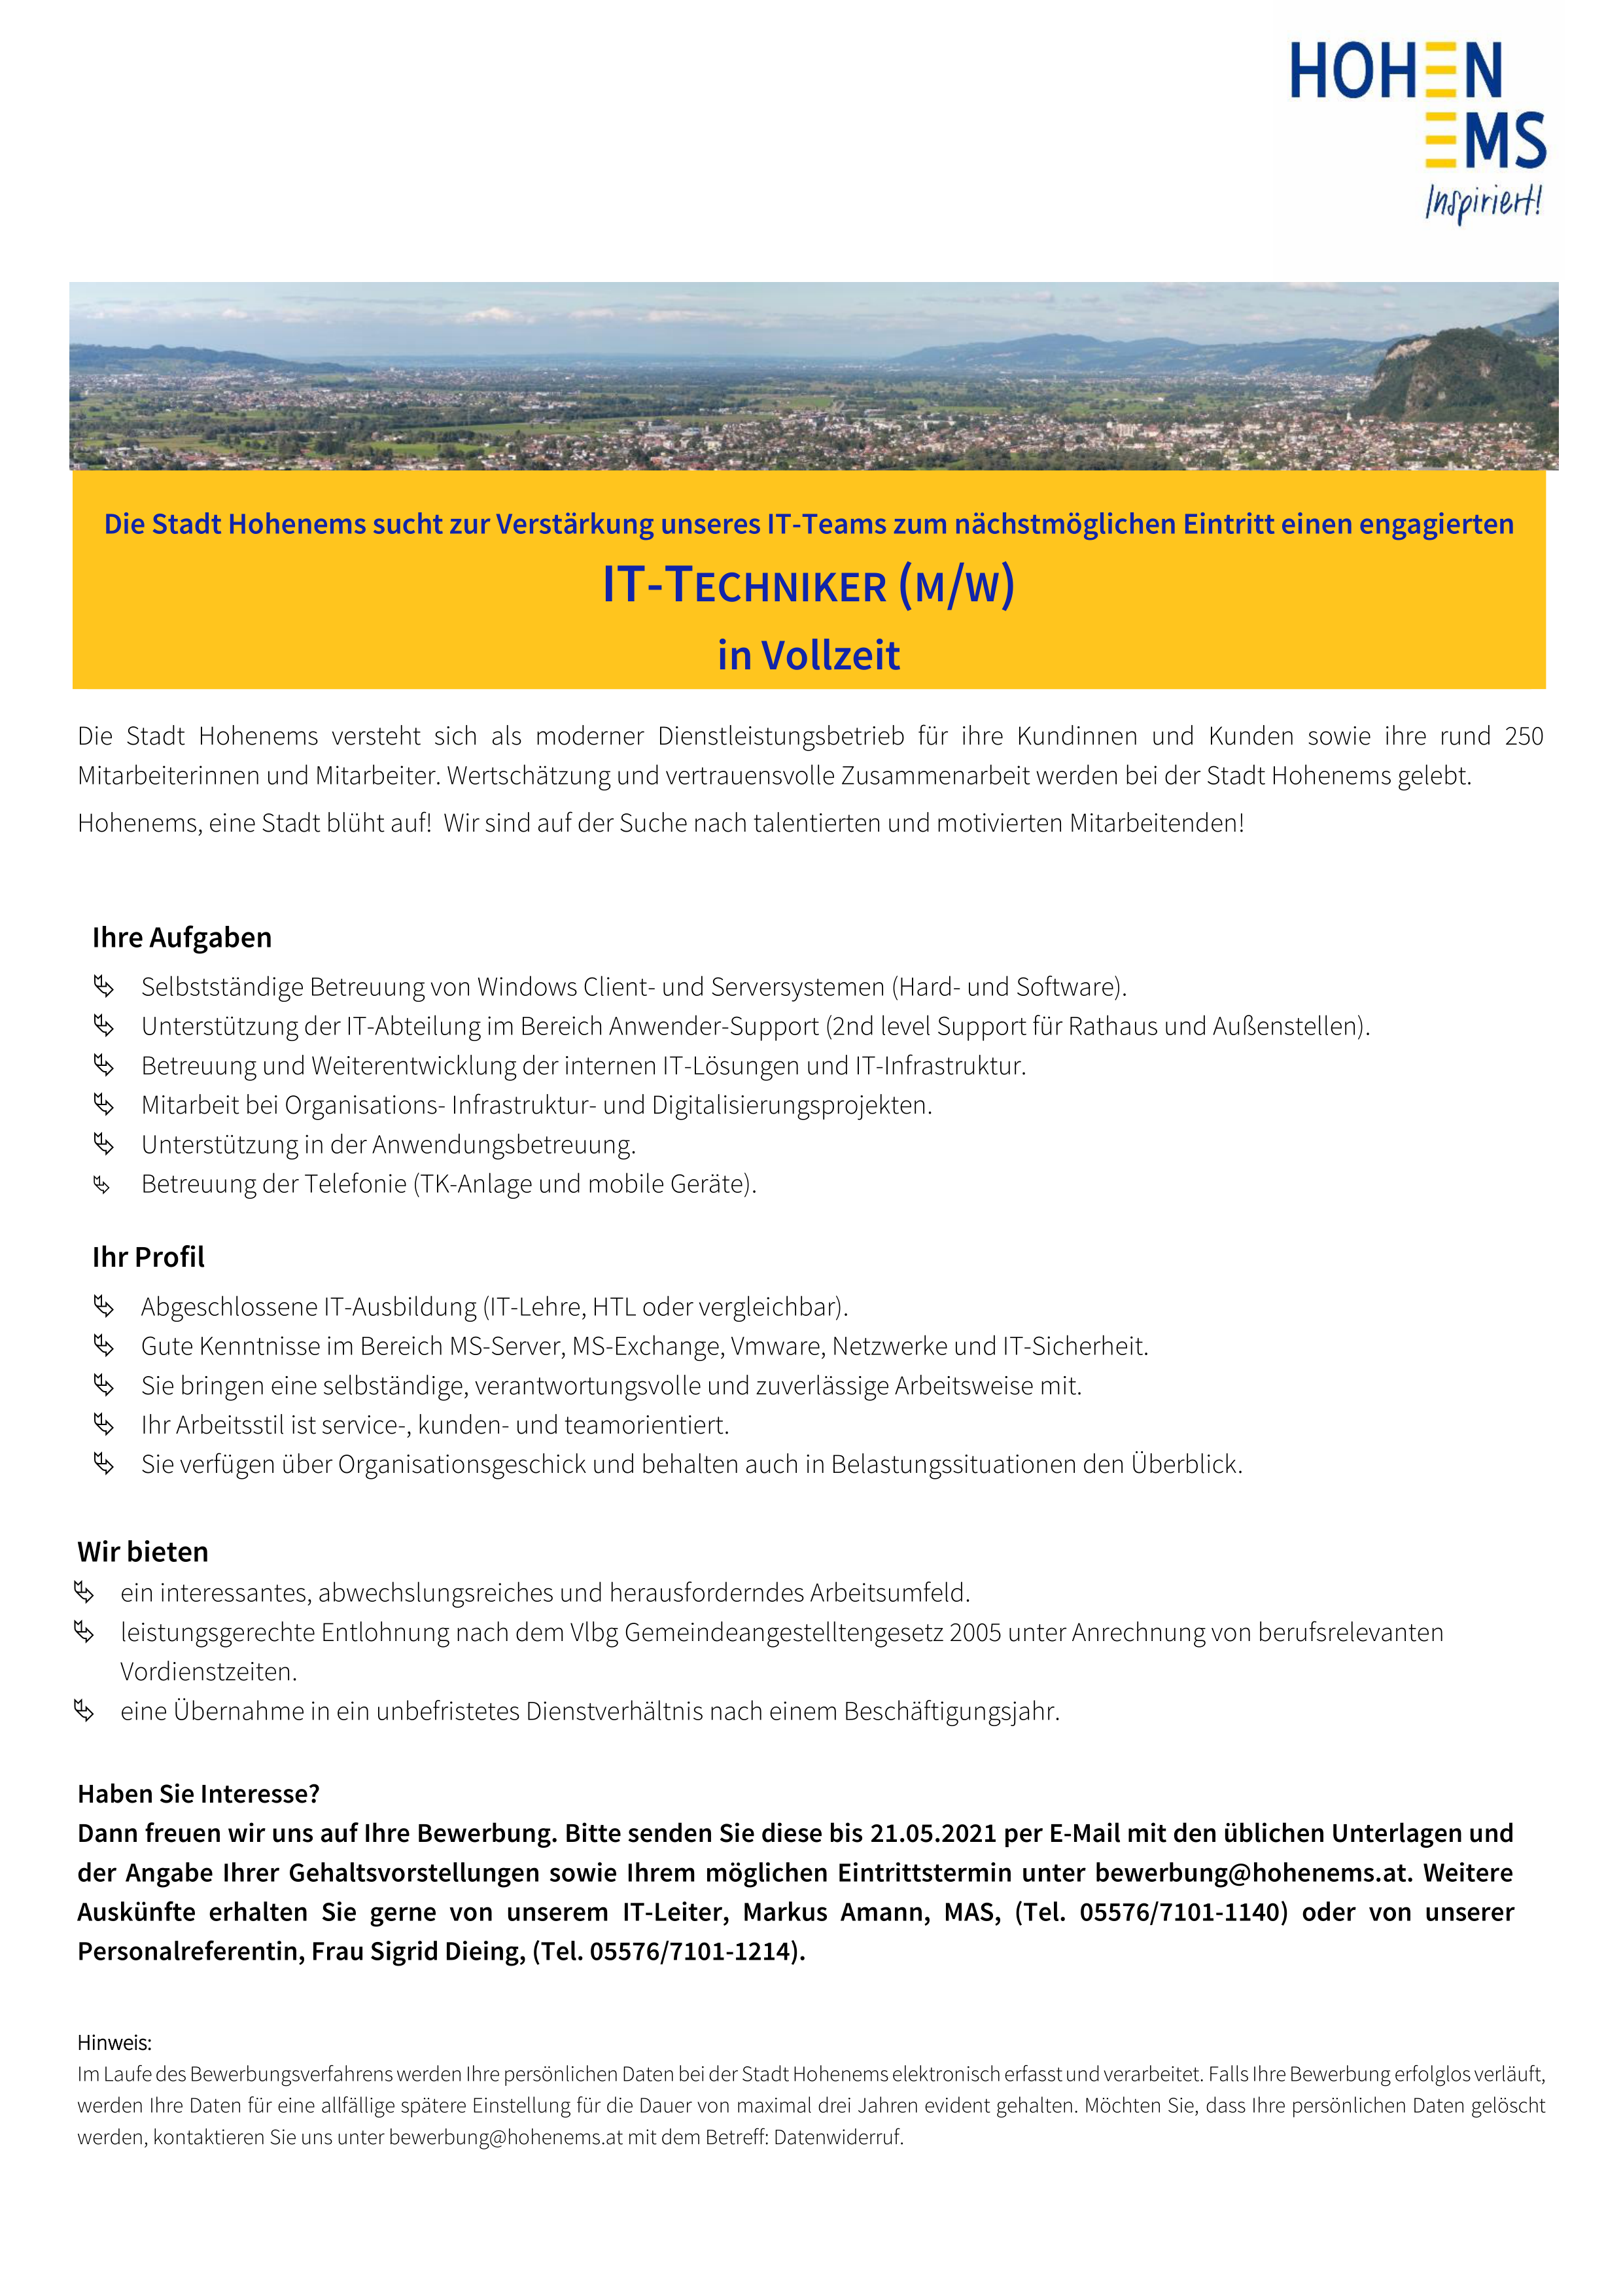 IT-TECHNIKER (M/W) in Vollzeit